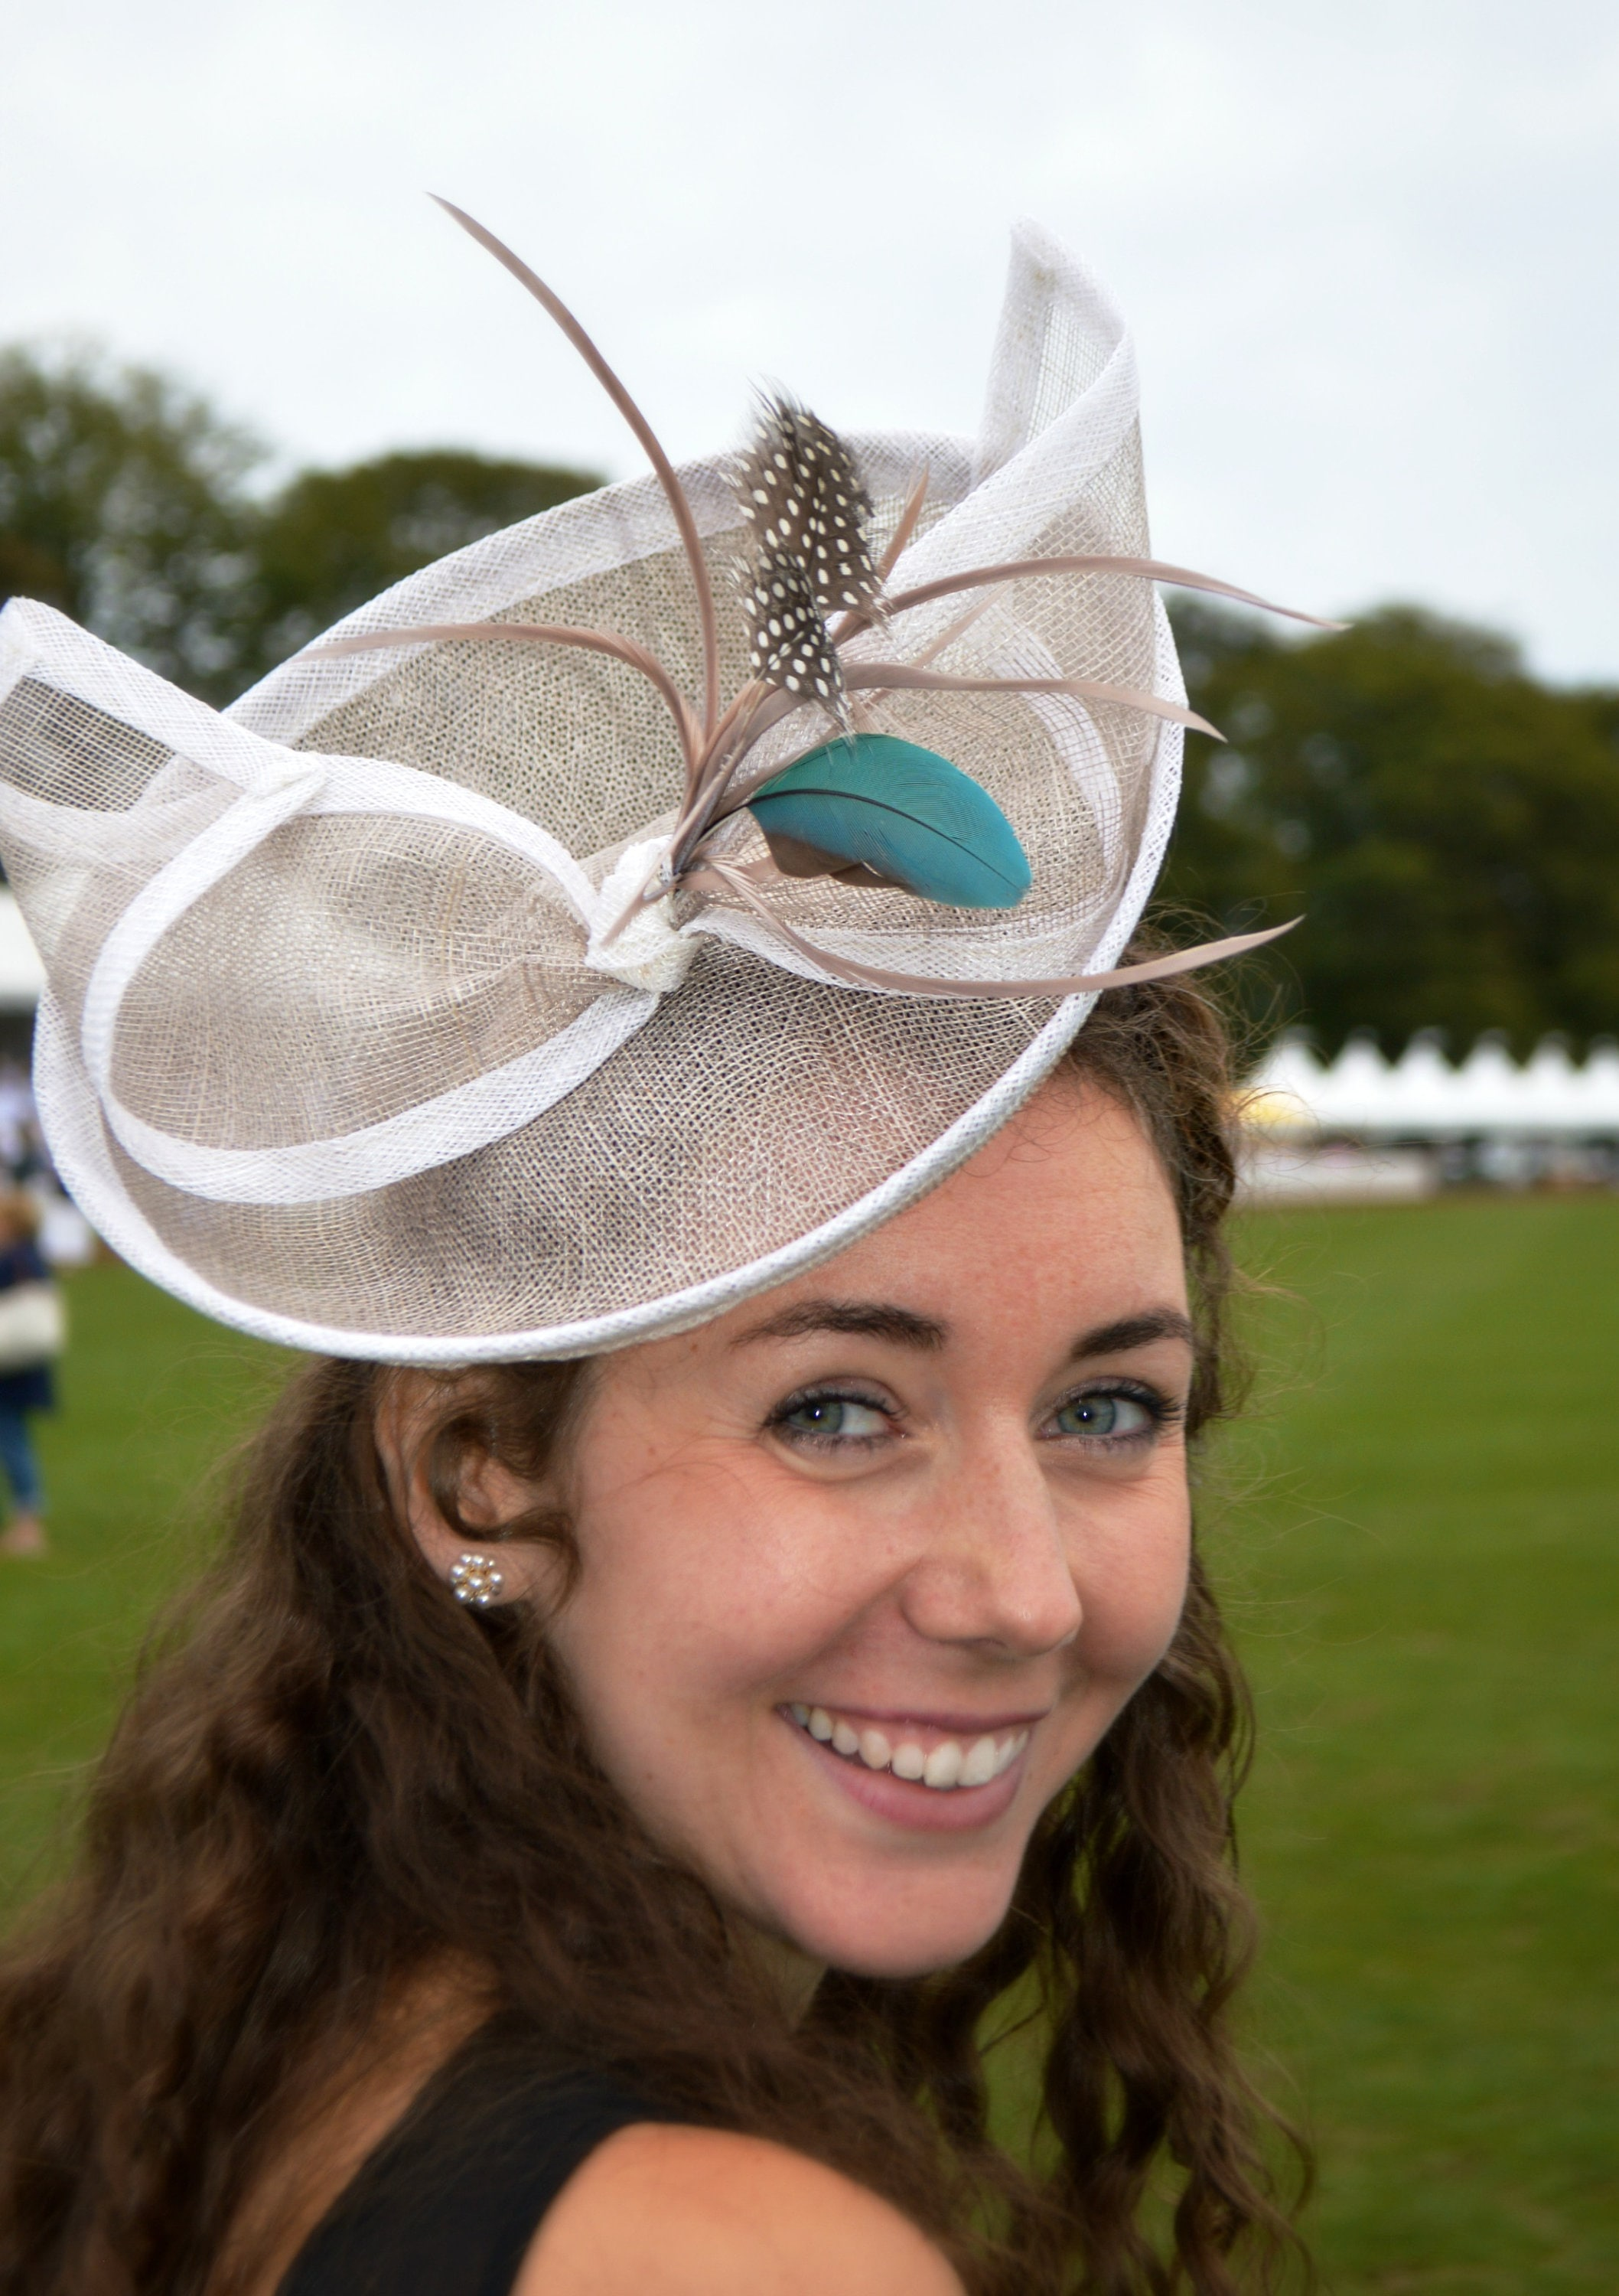 e648bfdf6 ASCOT - Gray Percher Fascinator hat in Kate Middleton Style for ...